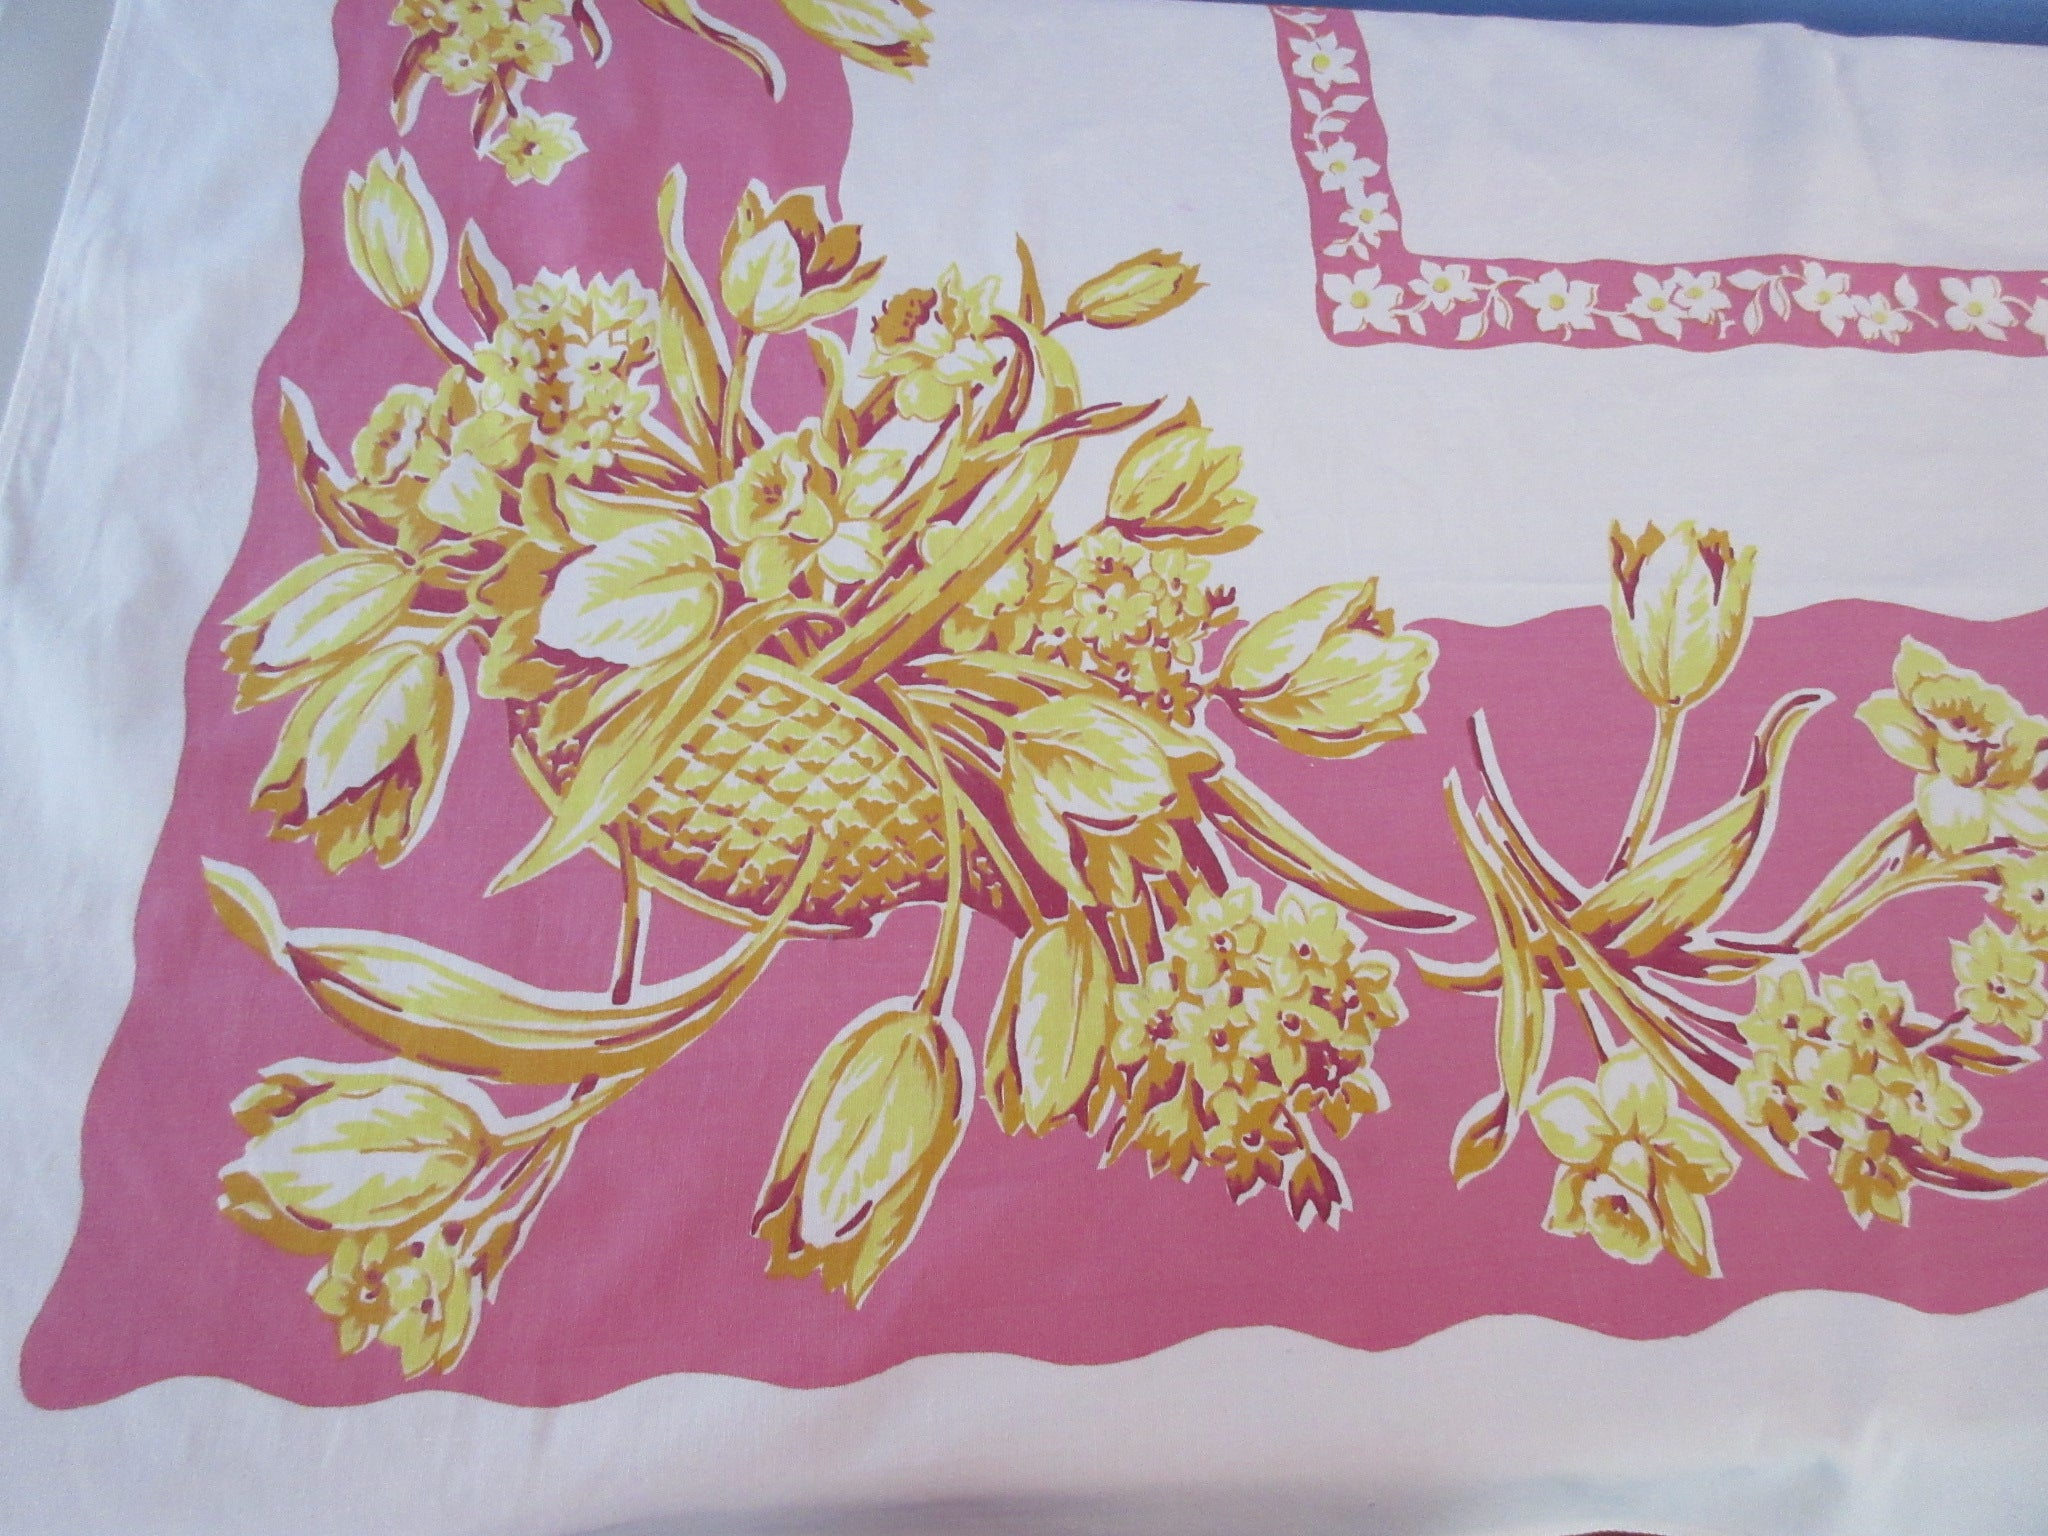 Yellow Tulips Daffodils on Pink Floral Vintage Printed Tablecloth (59 X 52)